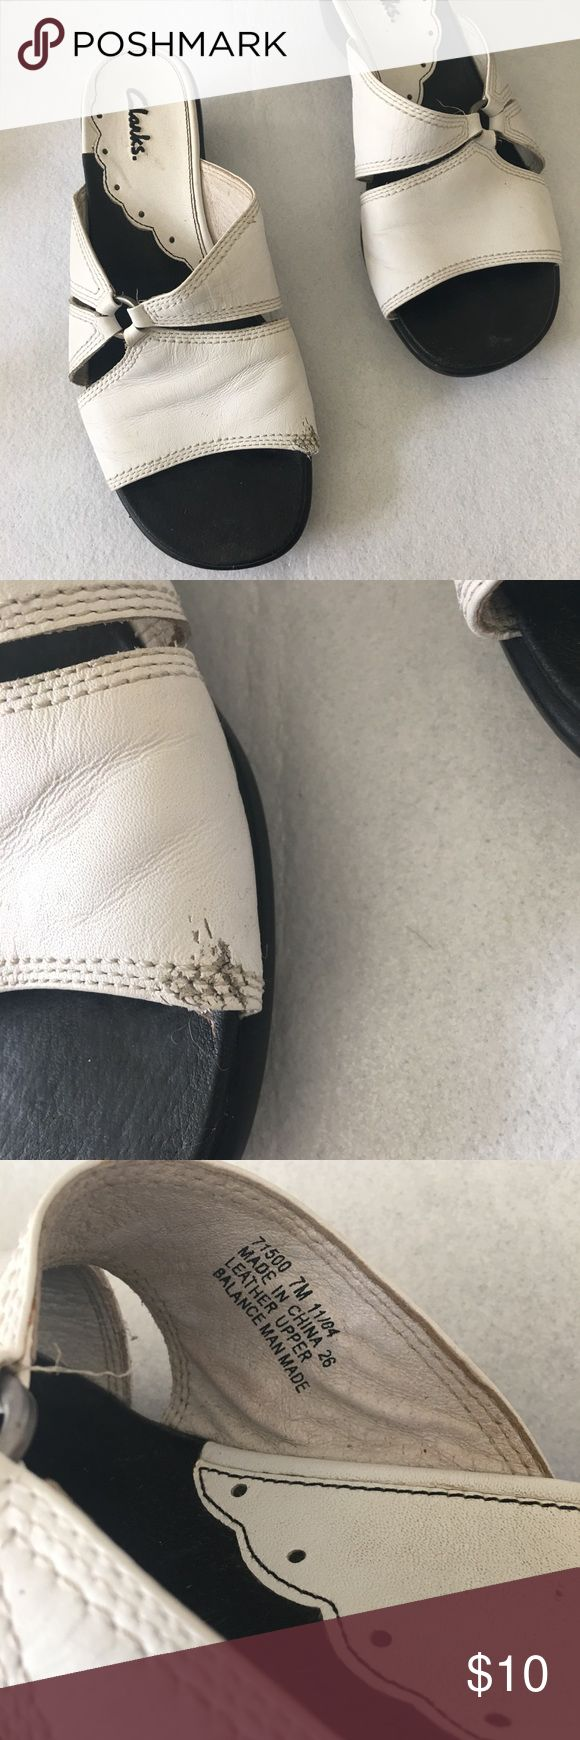 White leather Clark sandals White leather clark sandals great for any occasion. There are flaws in the shoes please check. Clarks Shoes Sandals